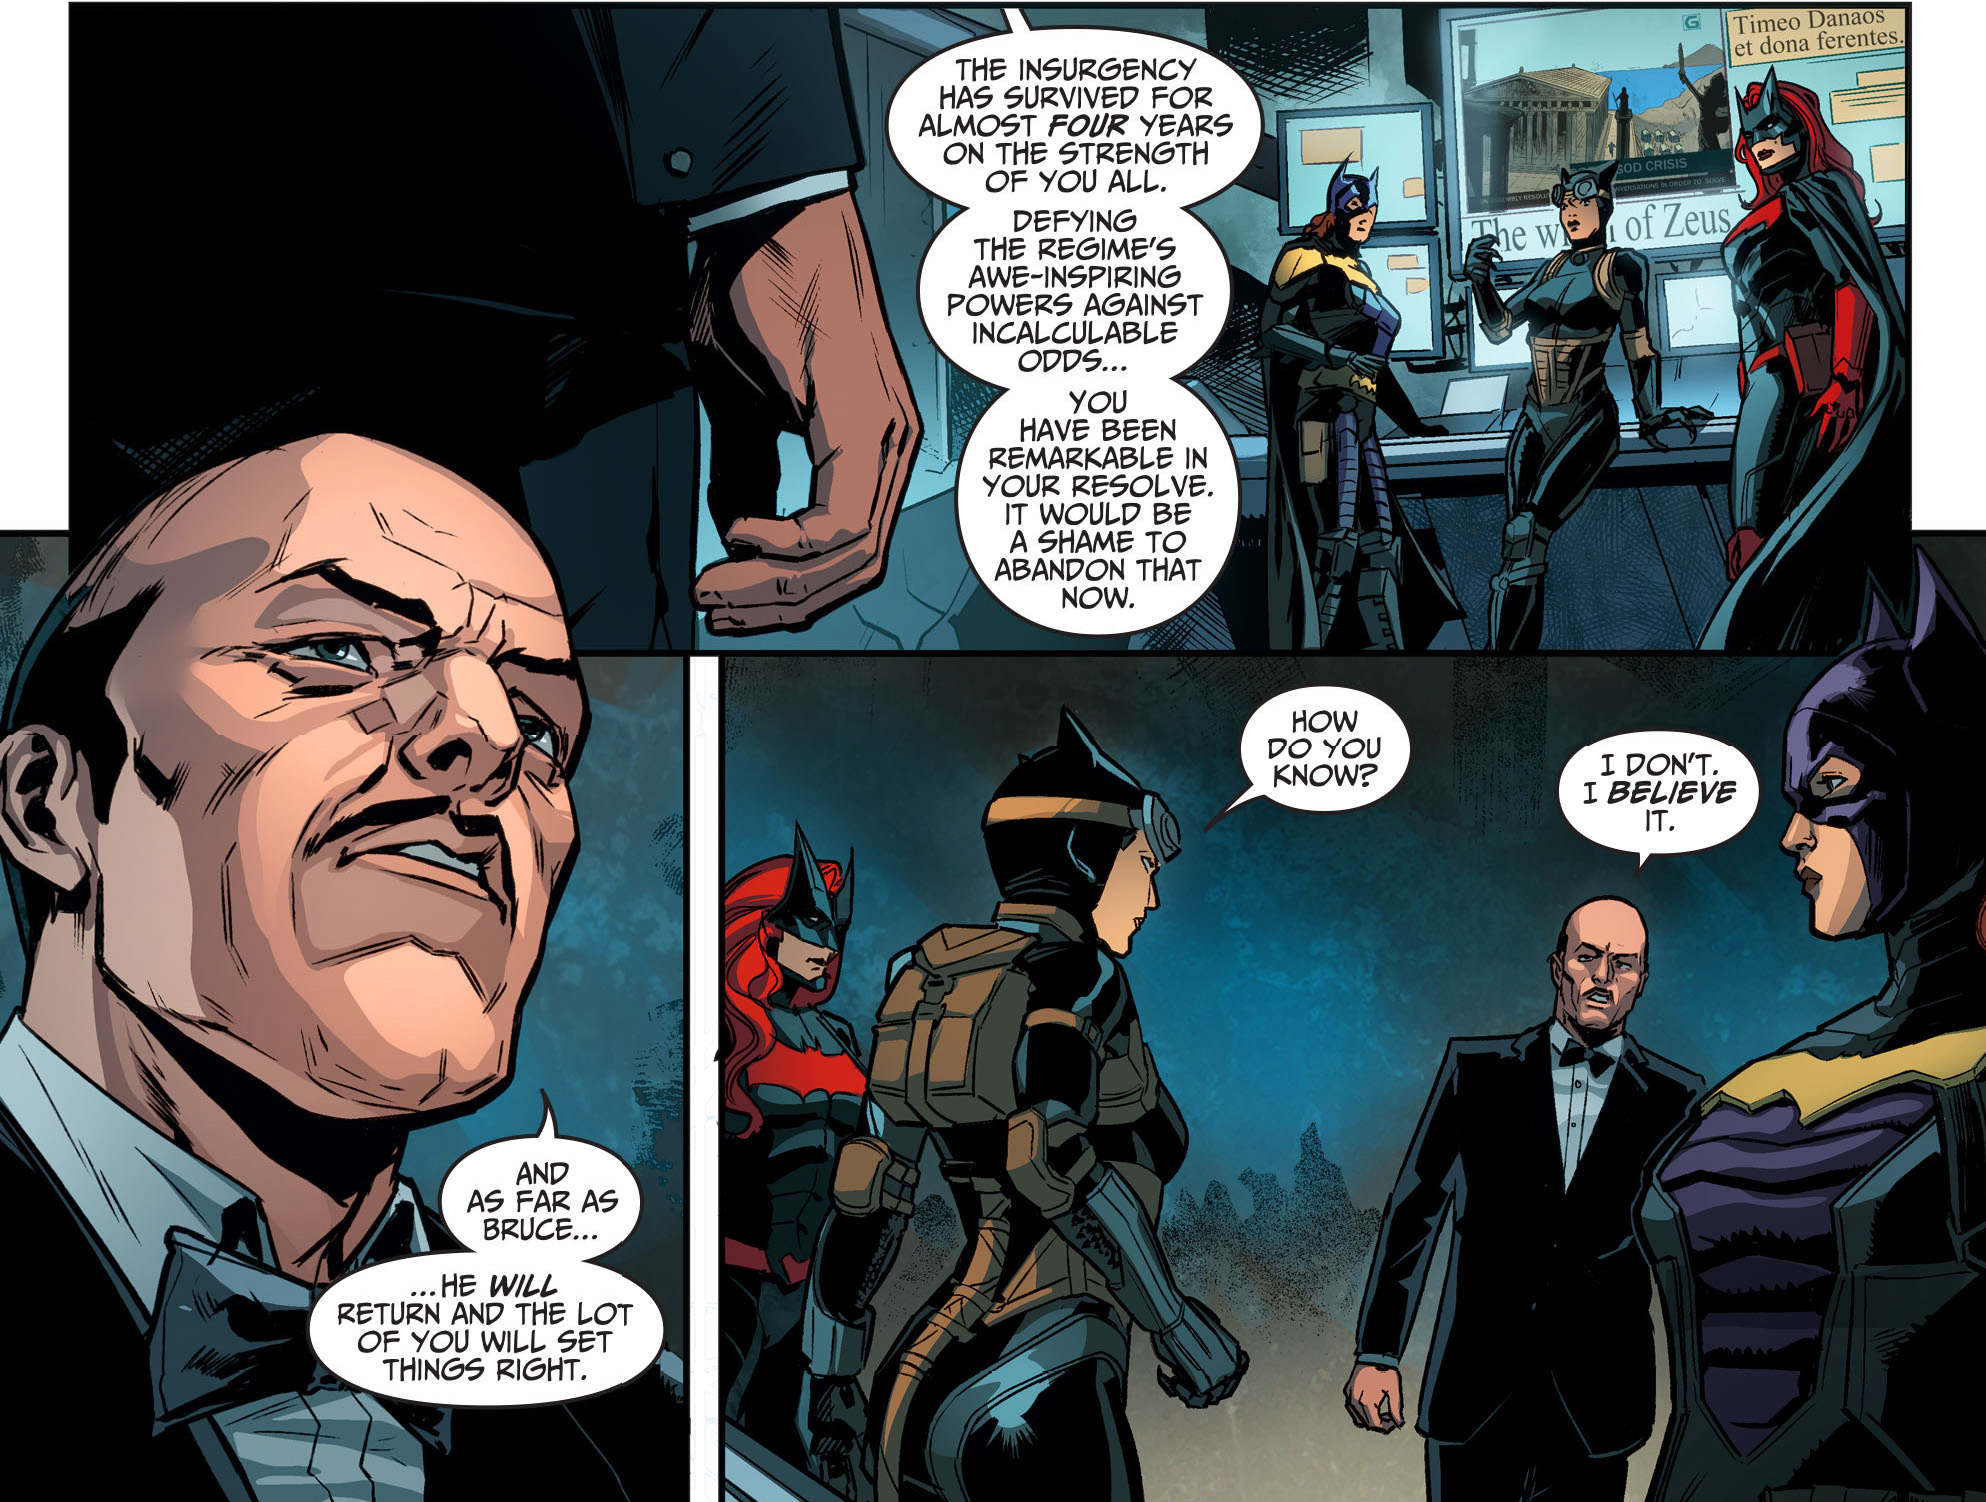 alfred pennyworth's pep talk to the birds of prey